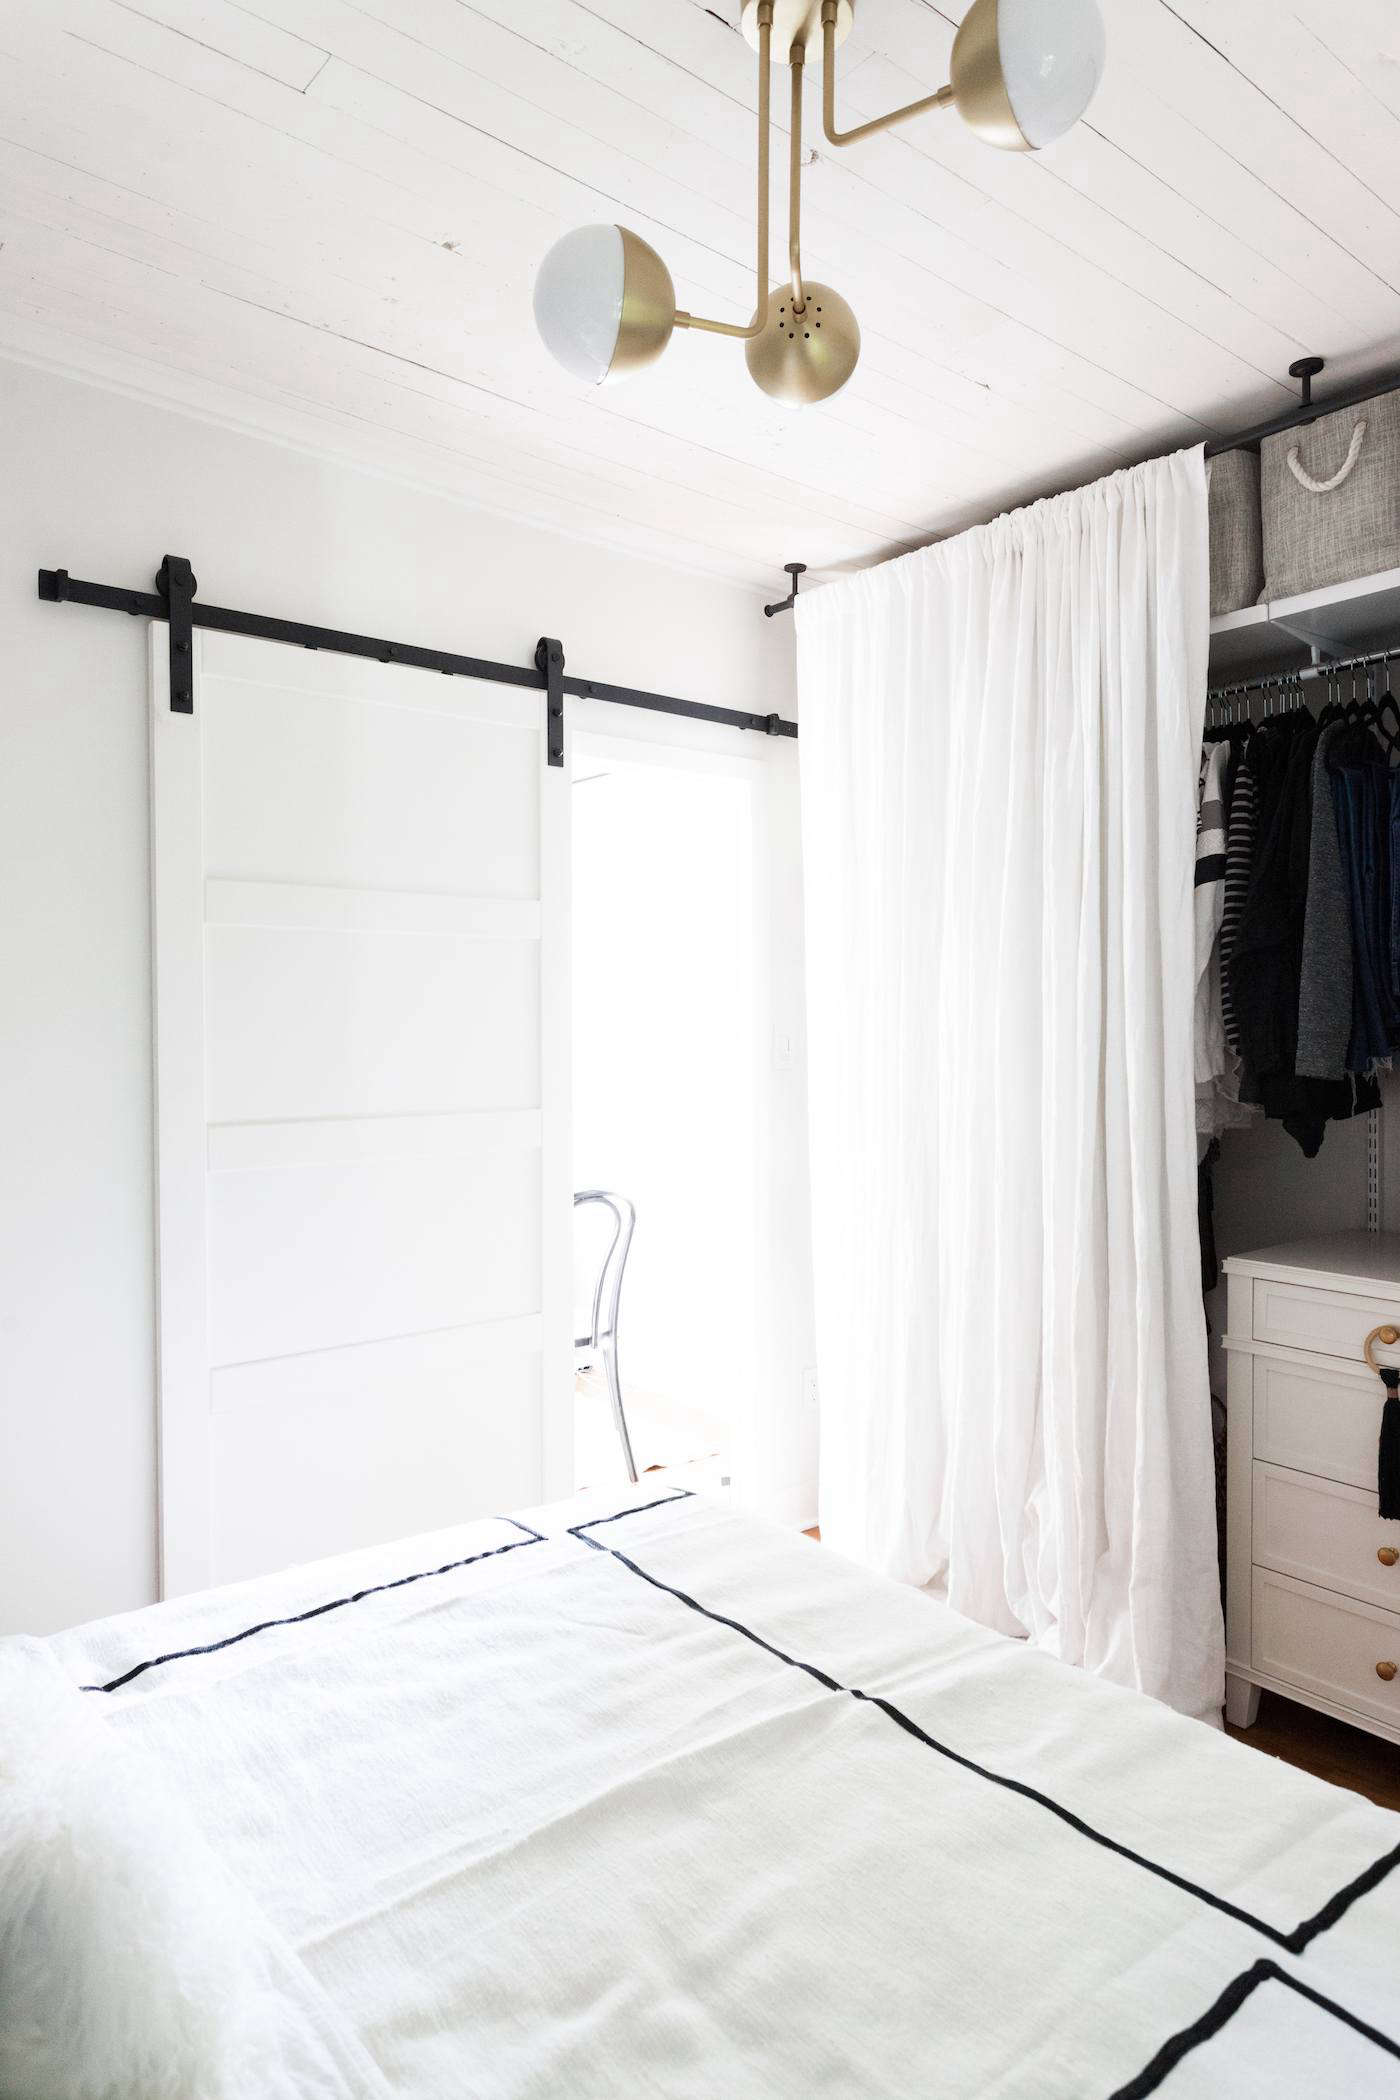 Soft Top Drapes In Optic White Are Used In Lieu Of A Closet Door In